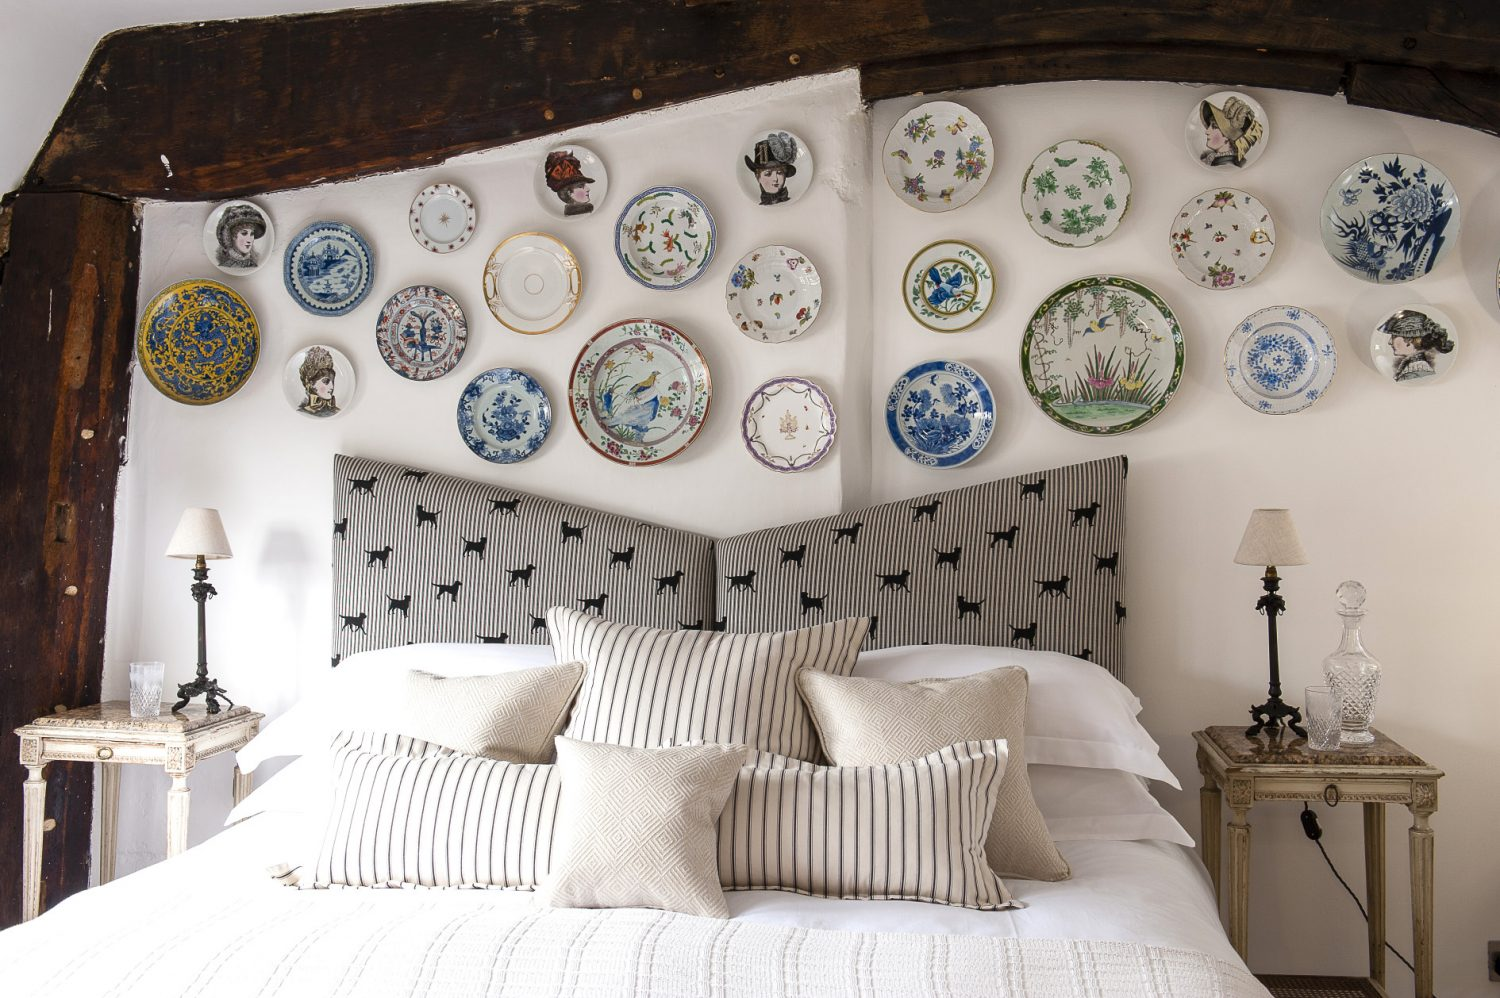 Using his grandmother's Herend pieces as a start, Matthew has gathered a superb collection of porcelain plates which now hang above the upholstered bedhead in Labrador